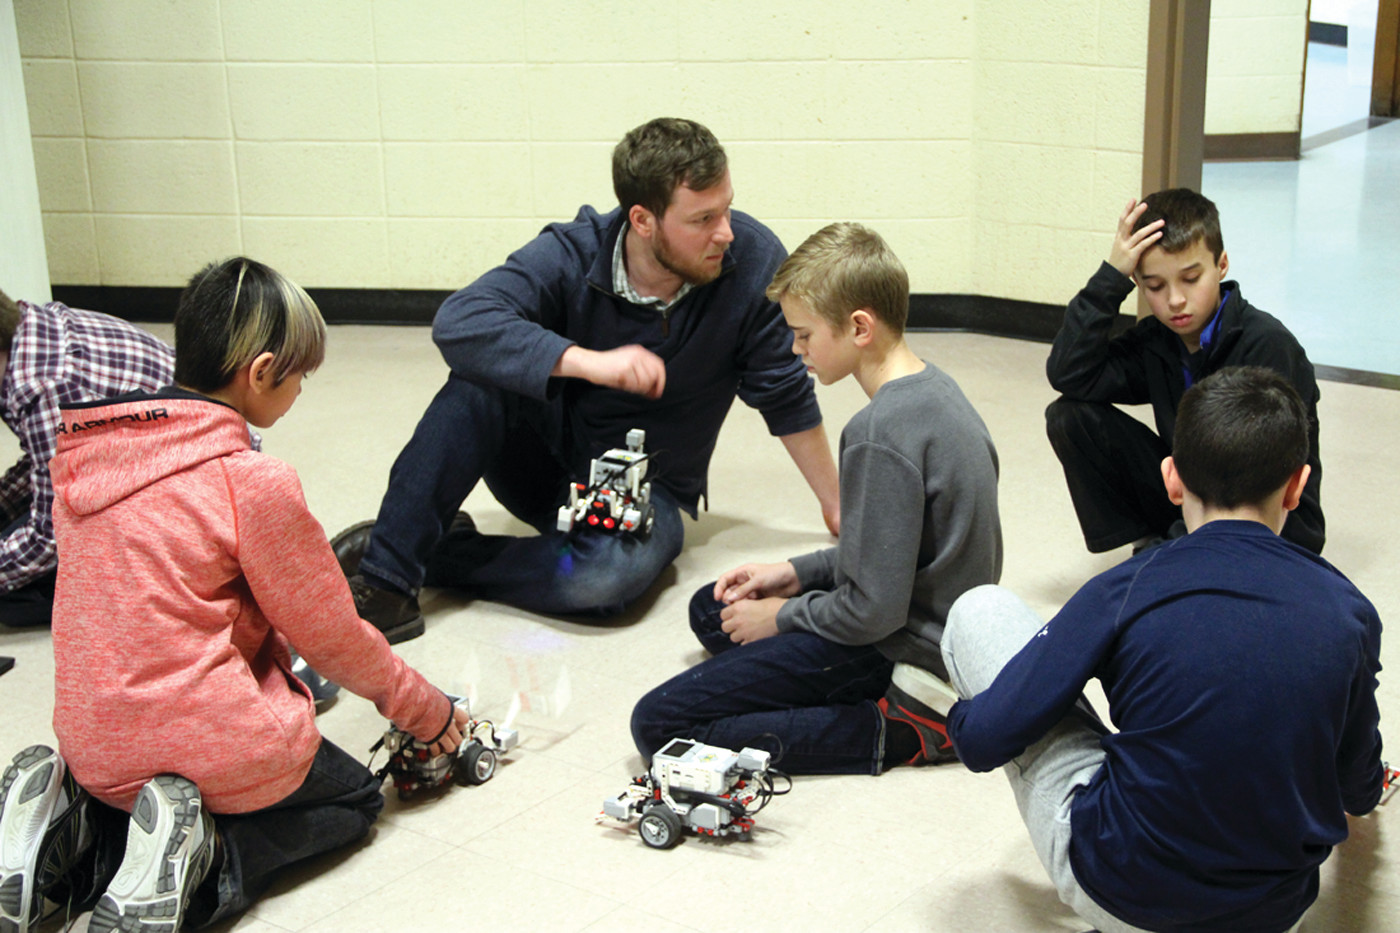 IN THE THICK OF IT: Toll Gate teacher Adam Ricci was on the floor with Scott School students and their robots. Ricci said the kids take quickly to building robots and he sees the after school activity as a good feeder to STEM (science, technology, engineering and math) curricula at the middle and high school levels.